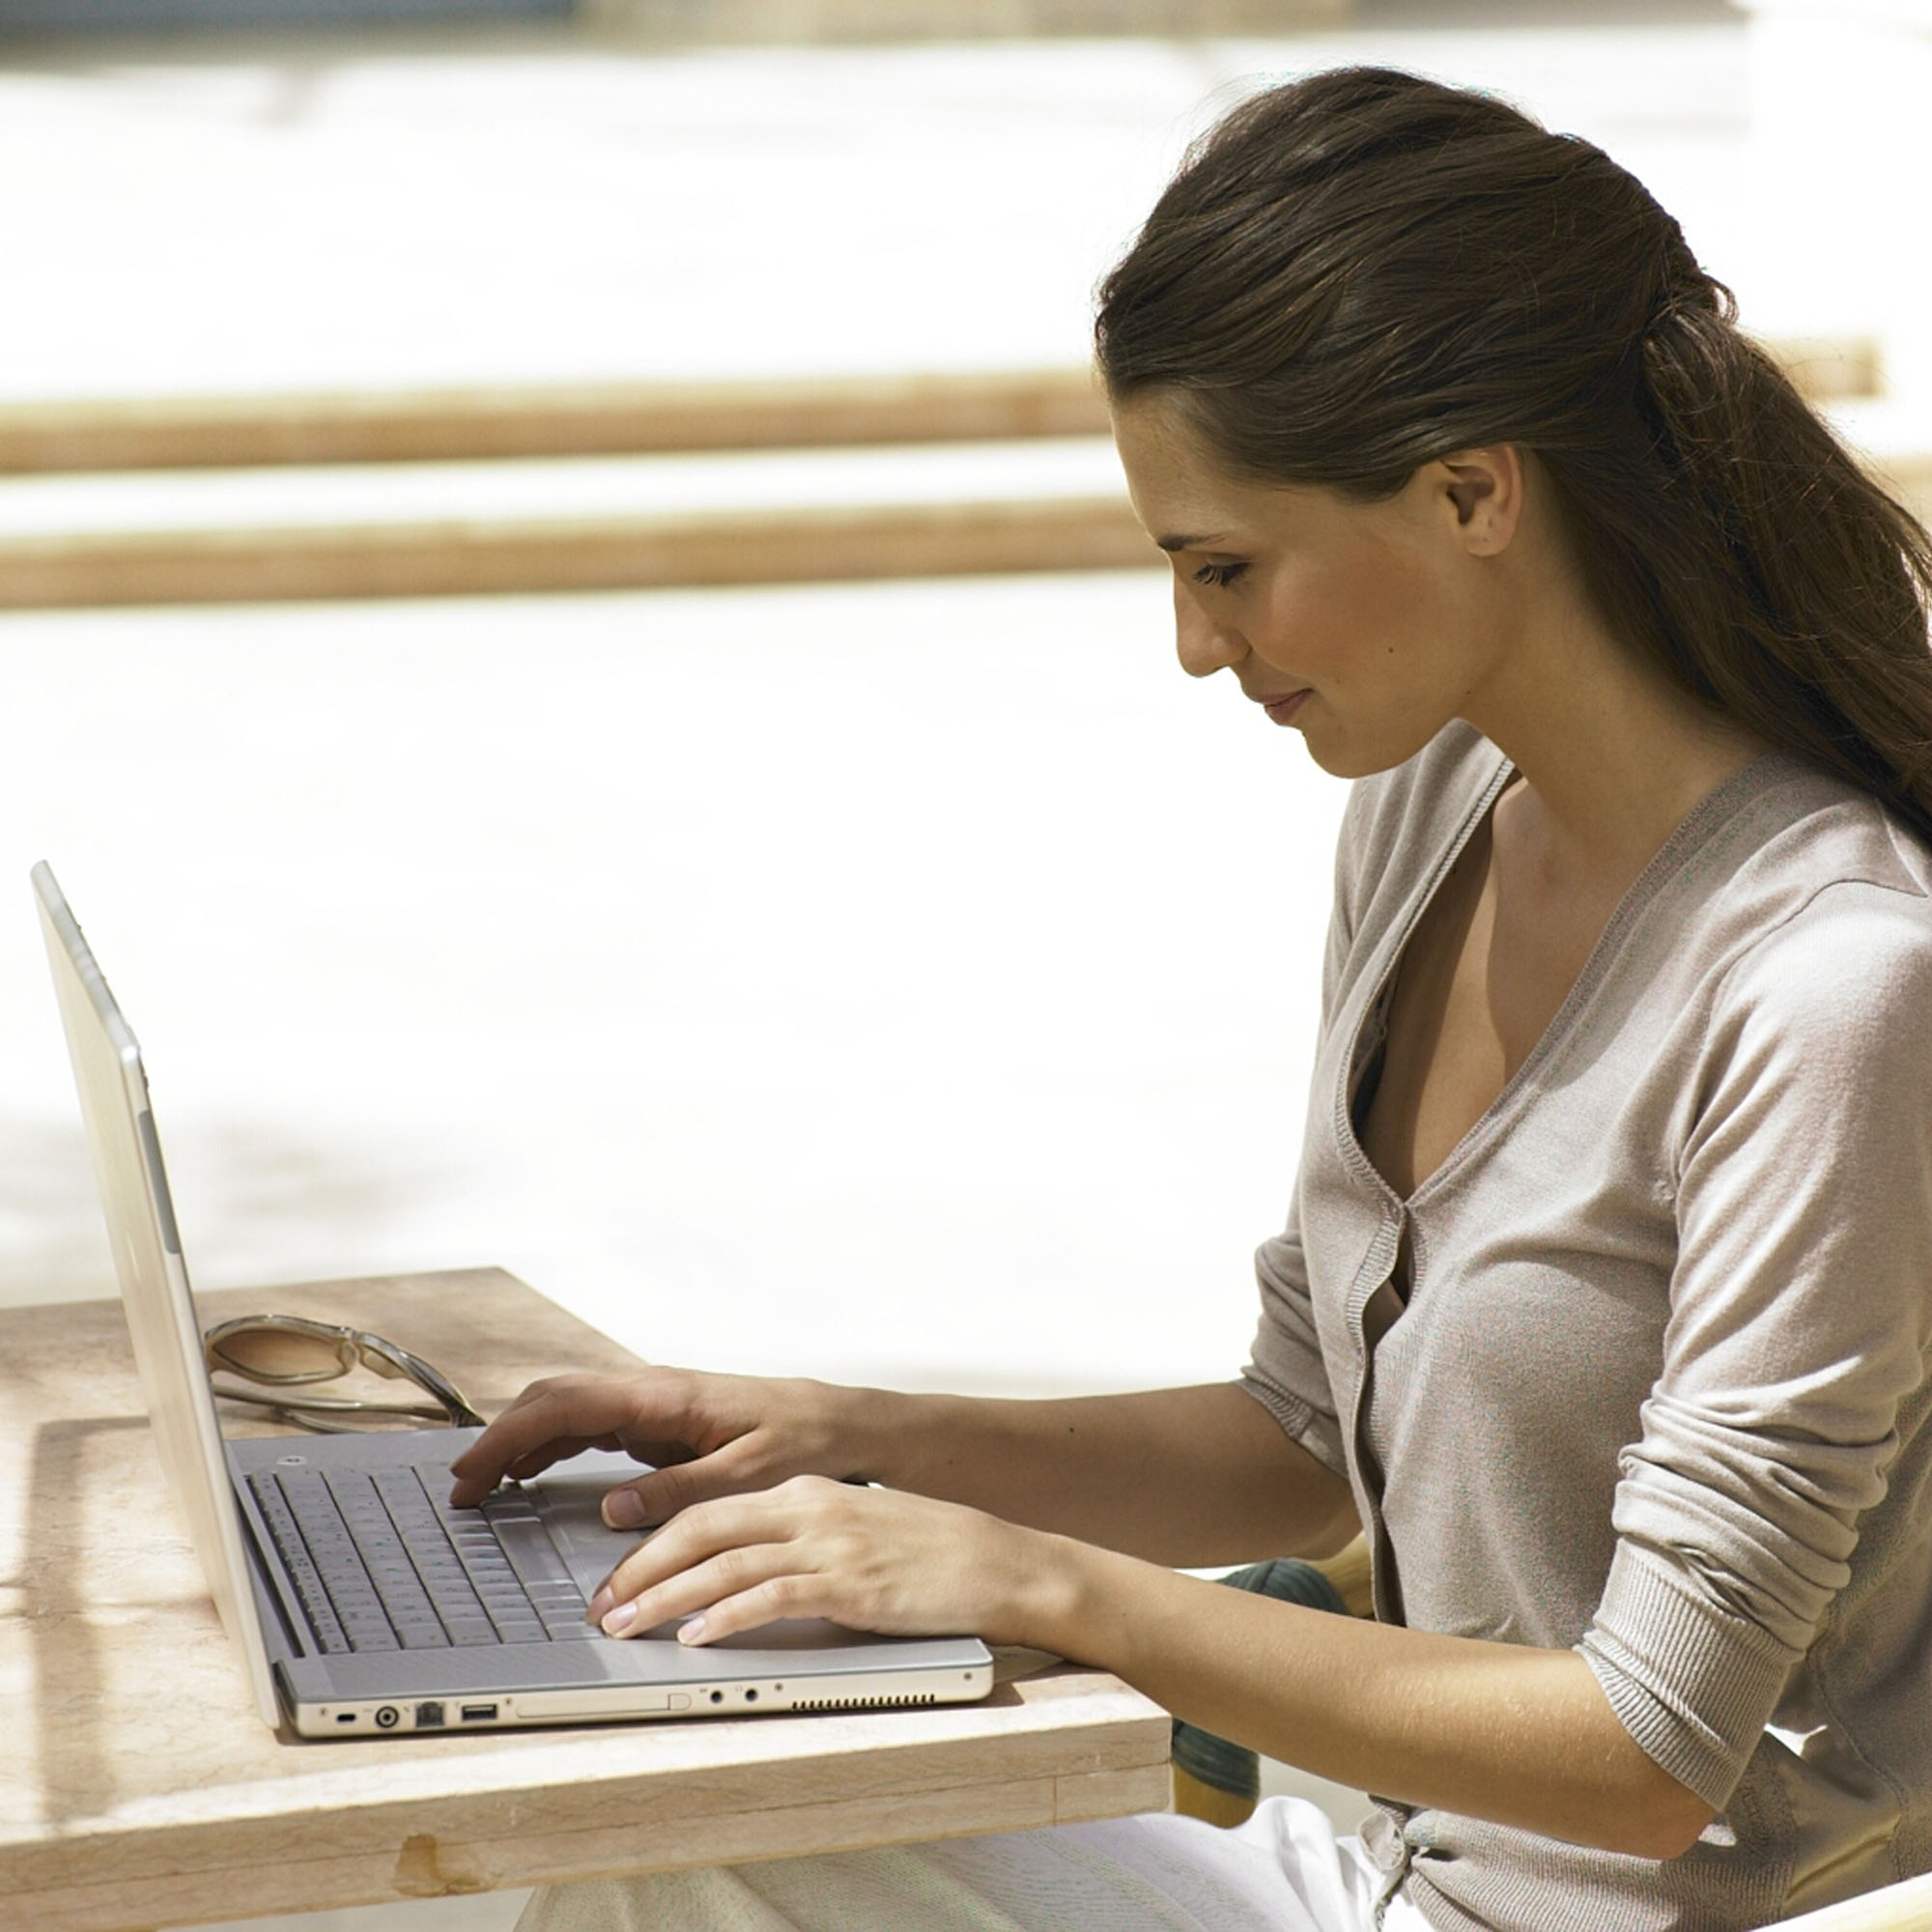 Brunette woman sitting at mac laptop computer